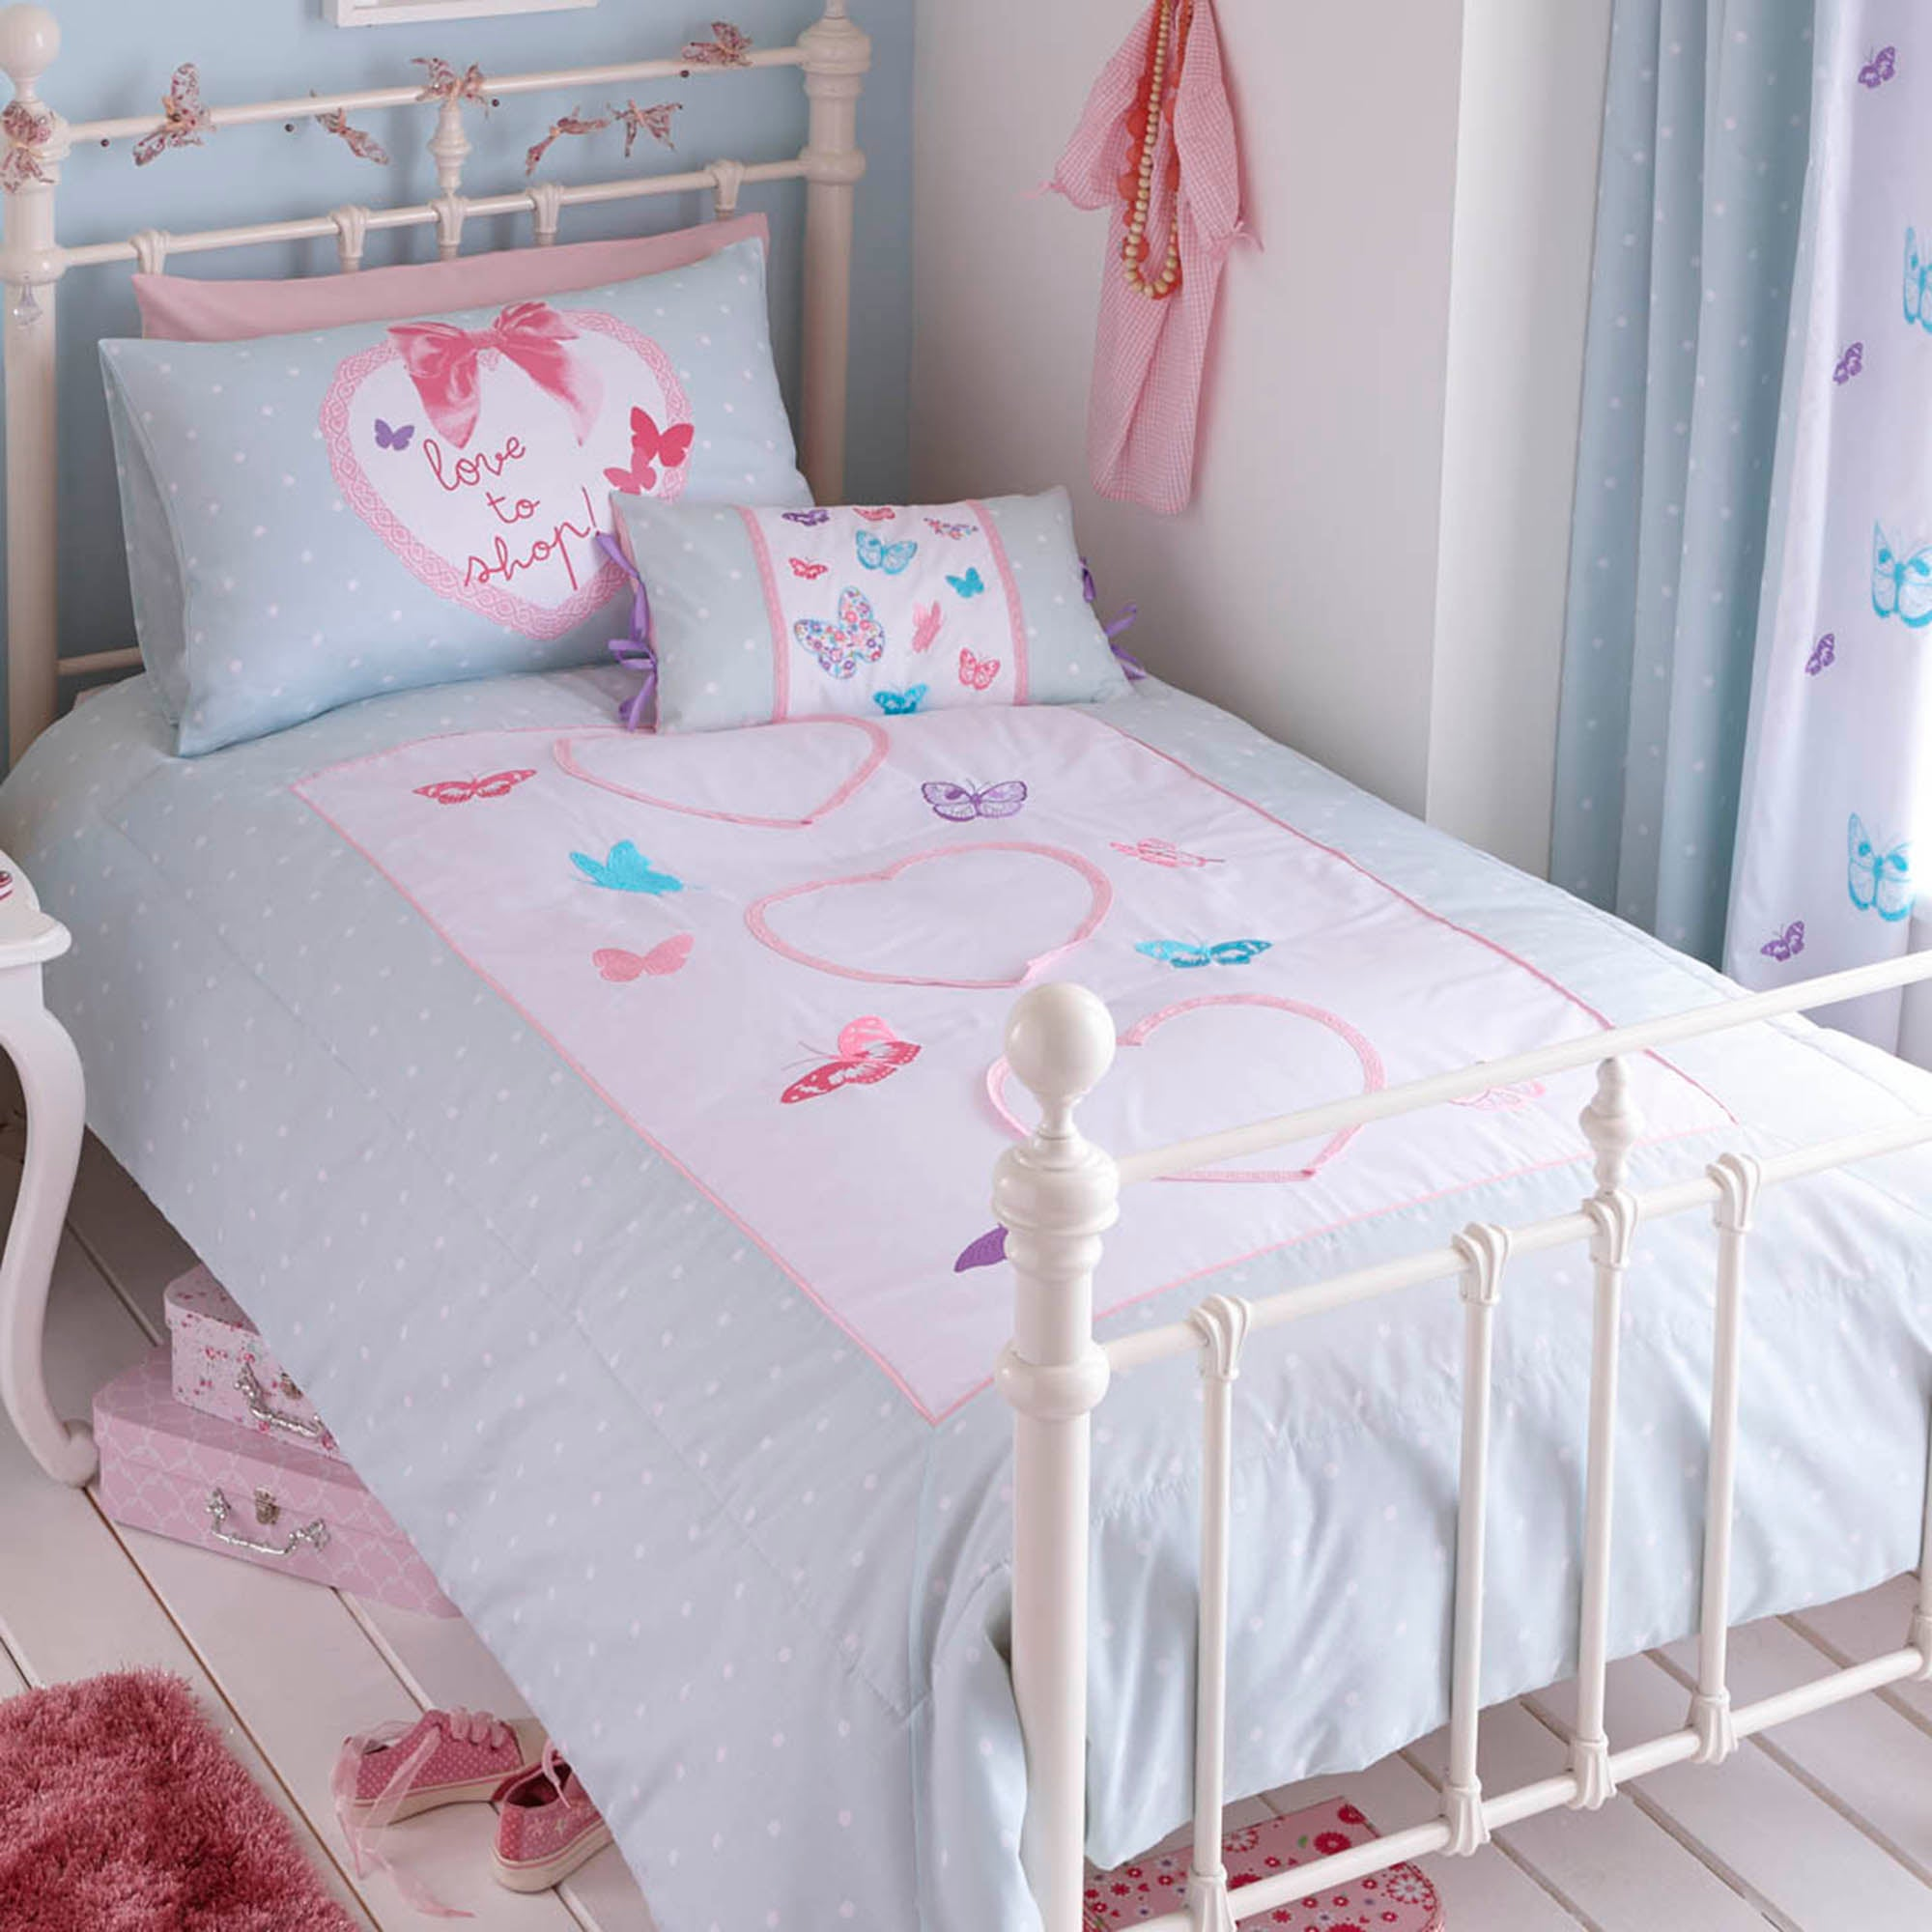 Kids Love To Shop Collection Bedspread